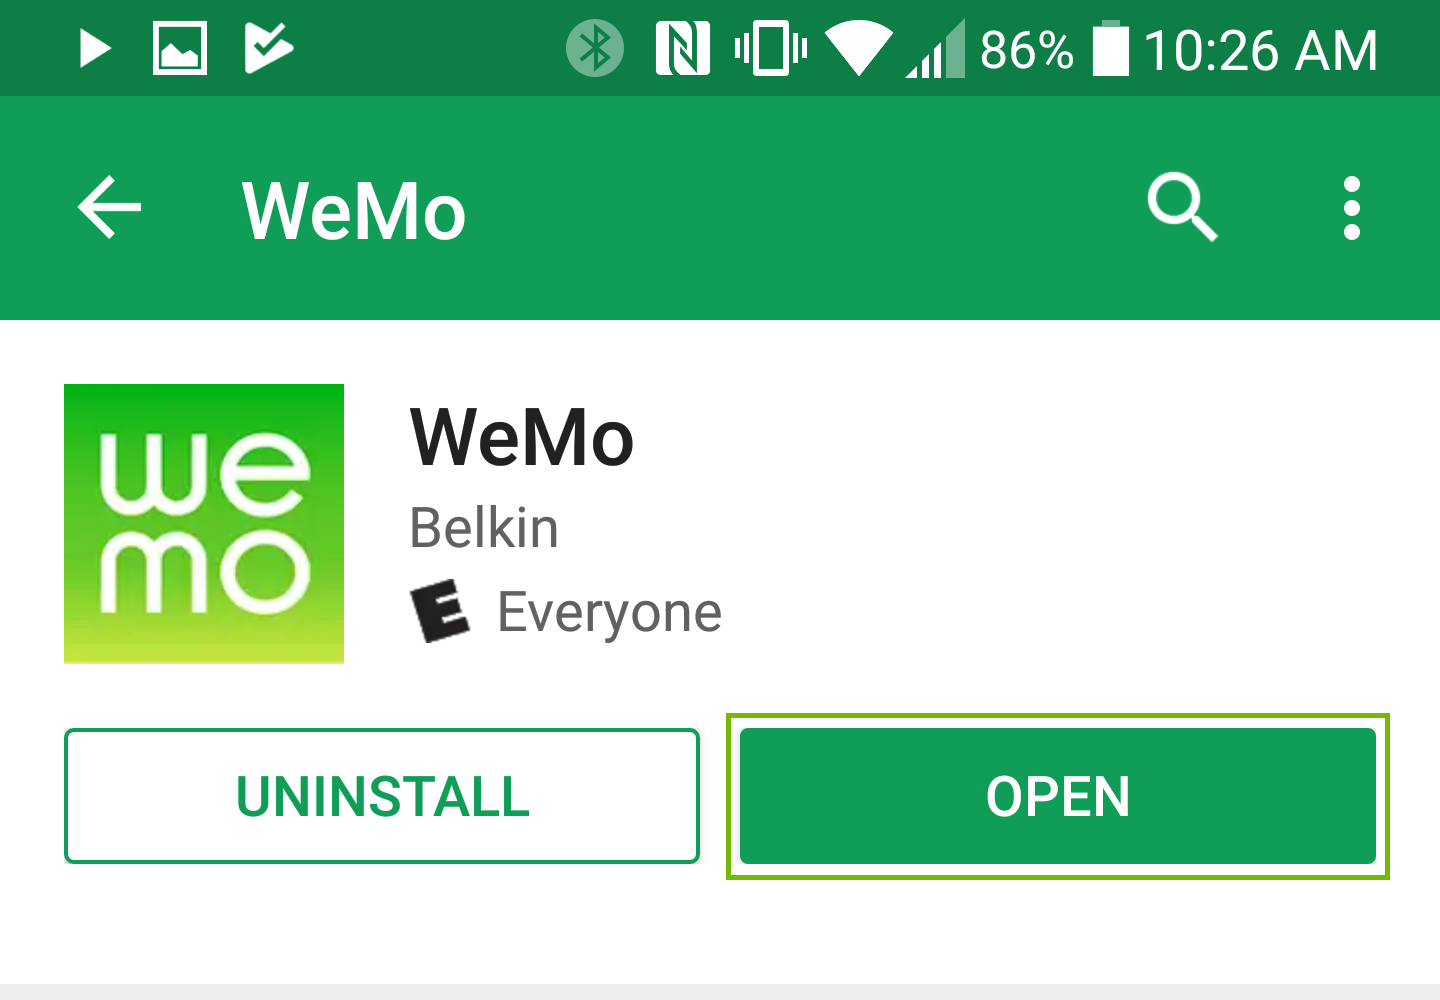 WeMo app installed, Open button highlighted.